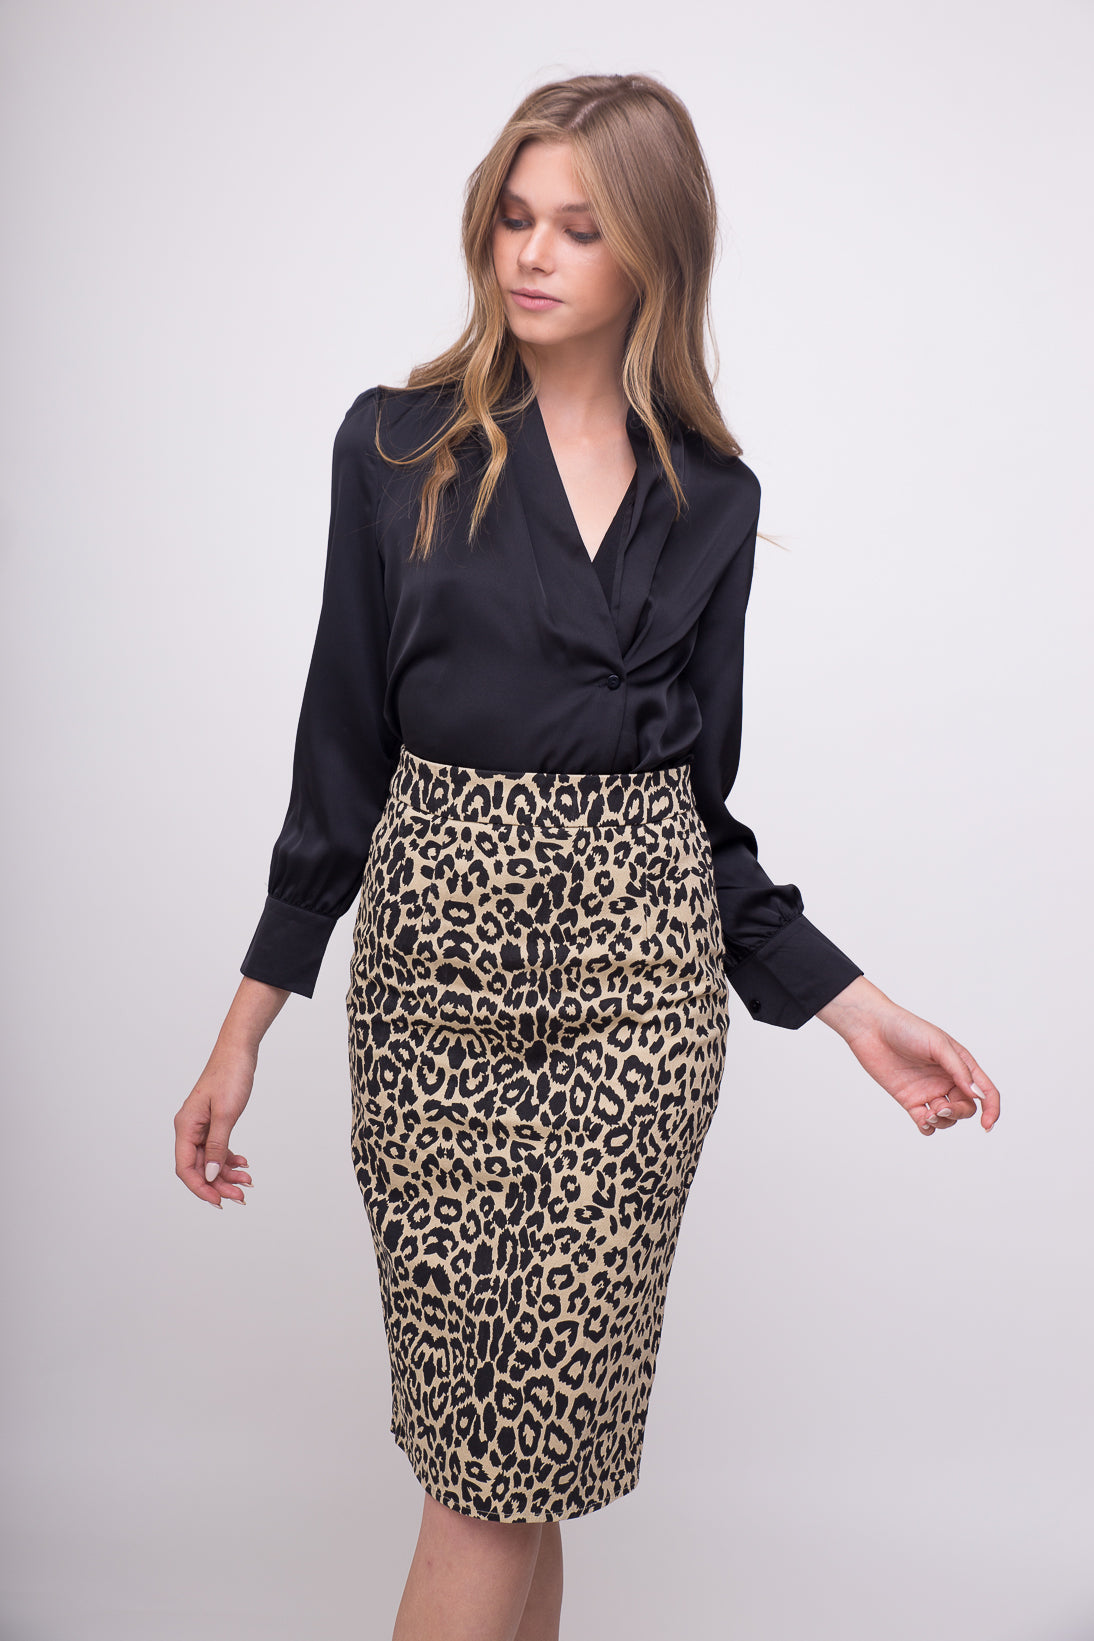 Leopard print denim skirt.